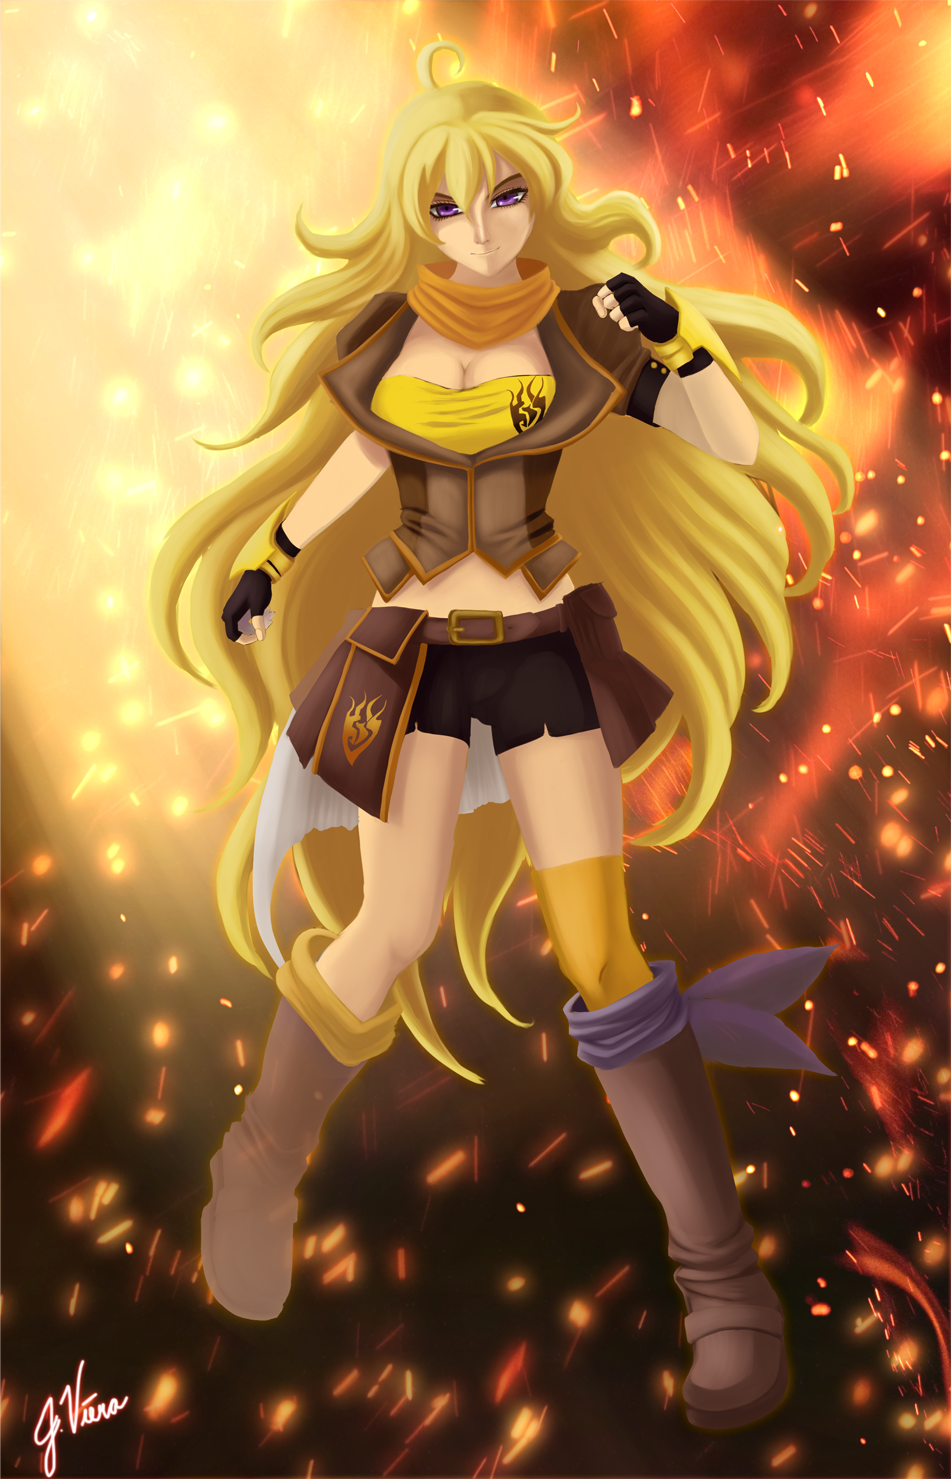 Free Download Rwby Yang Xiao Long Wallpaper By 951x1479 For Your